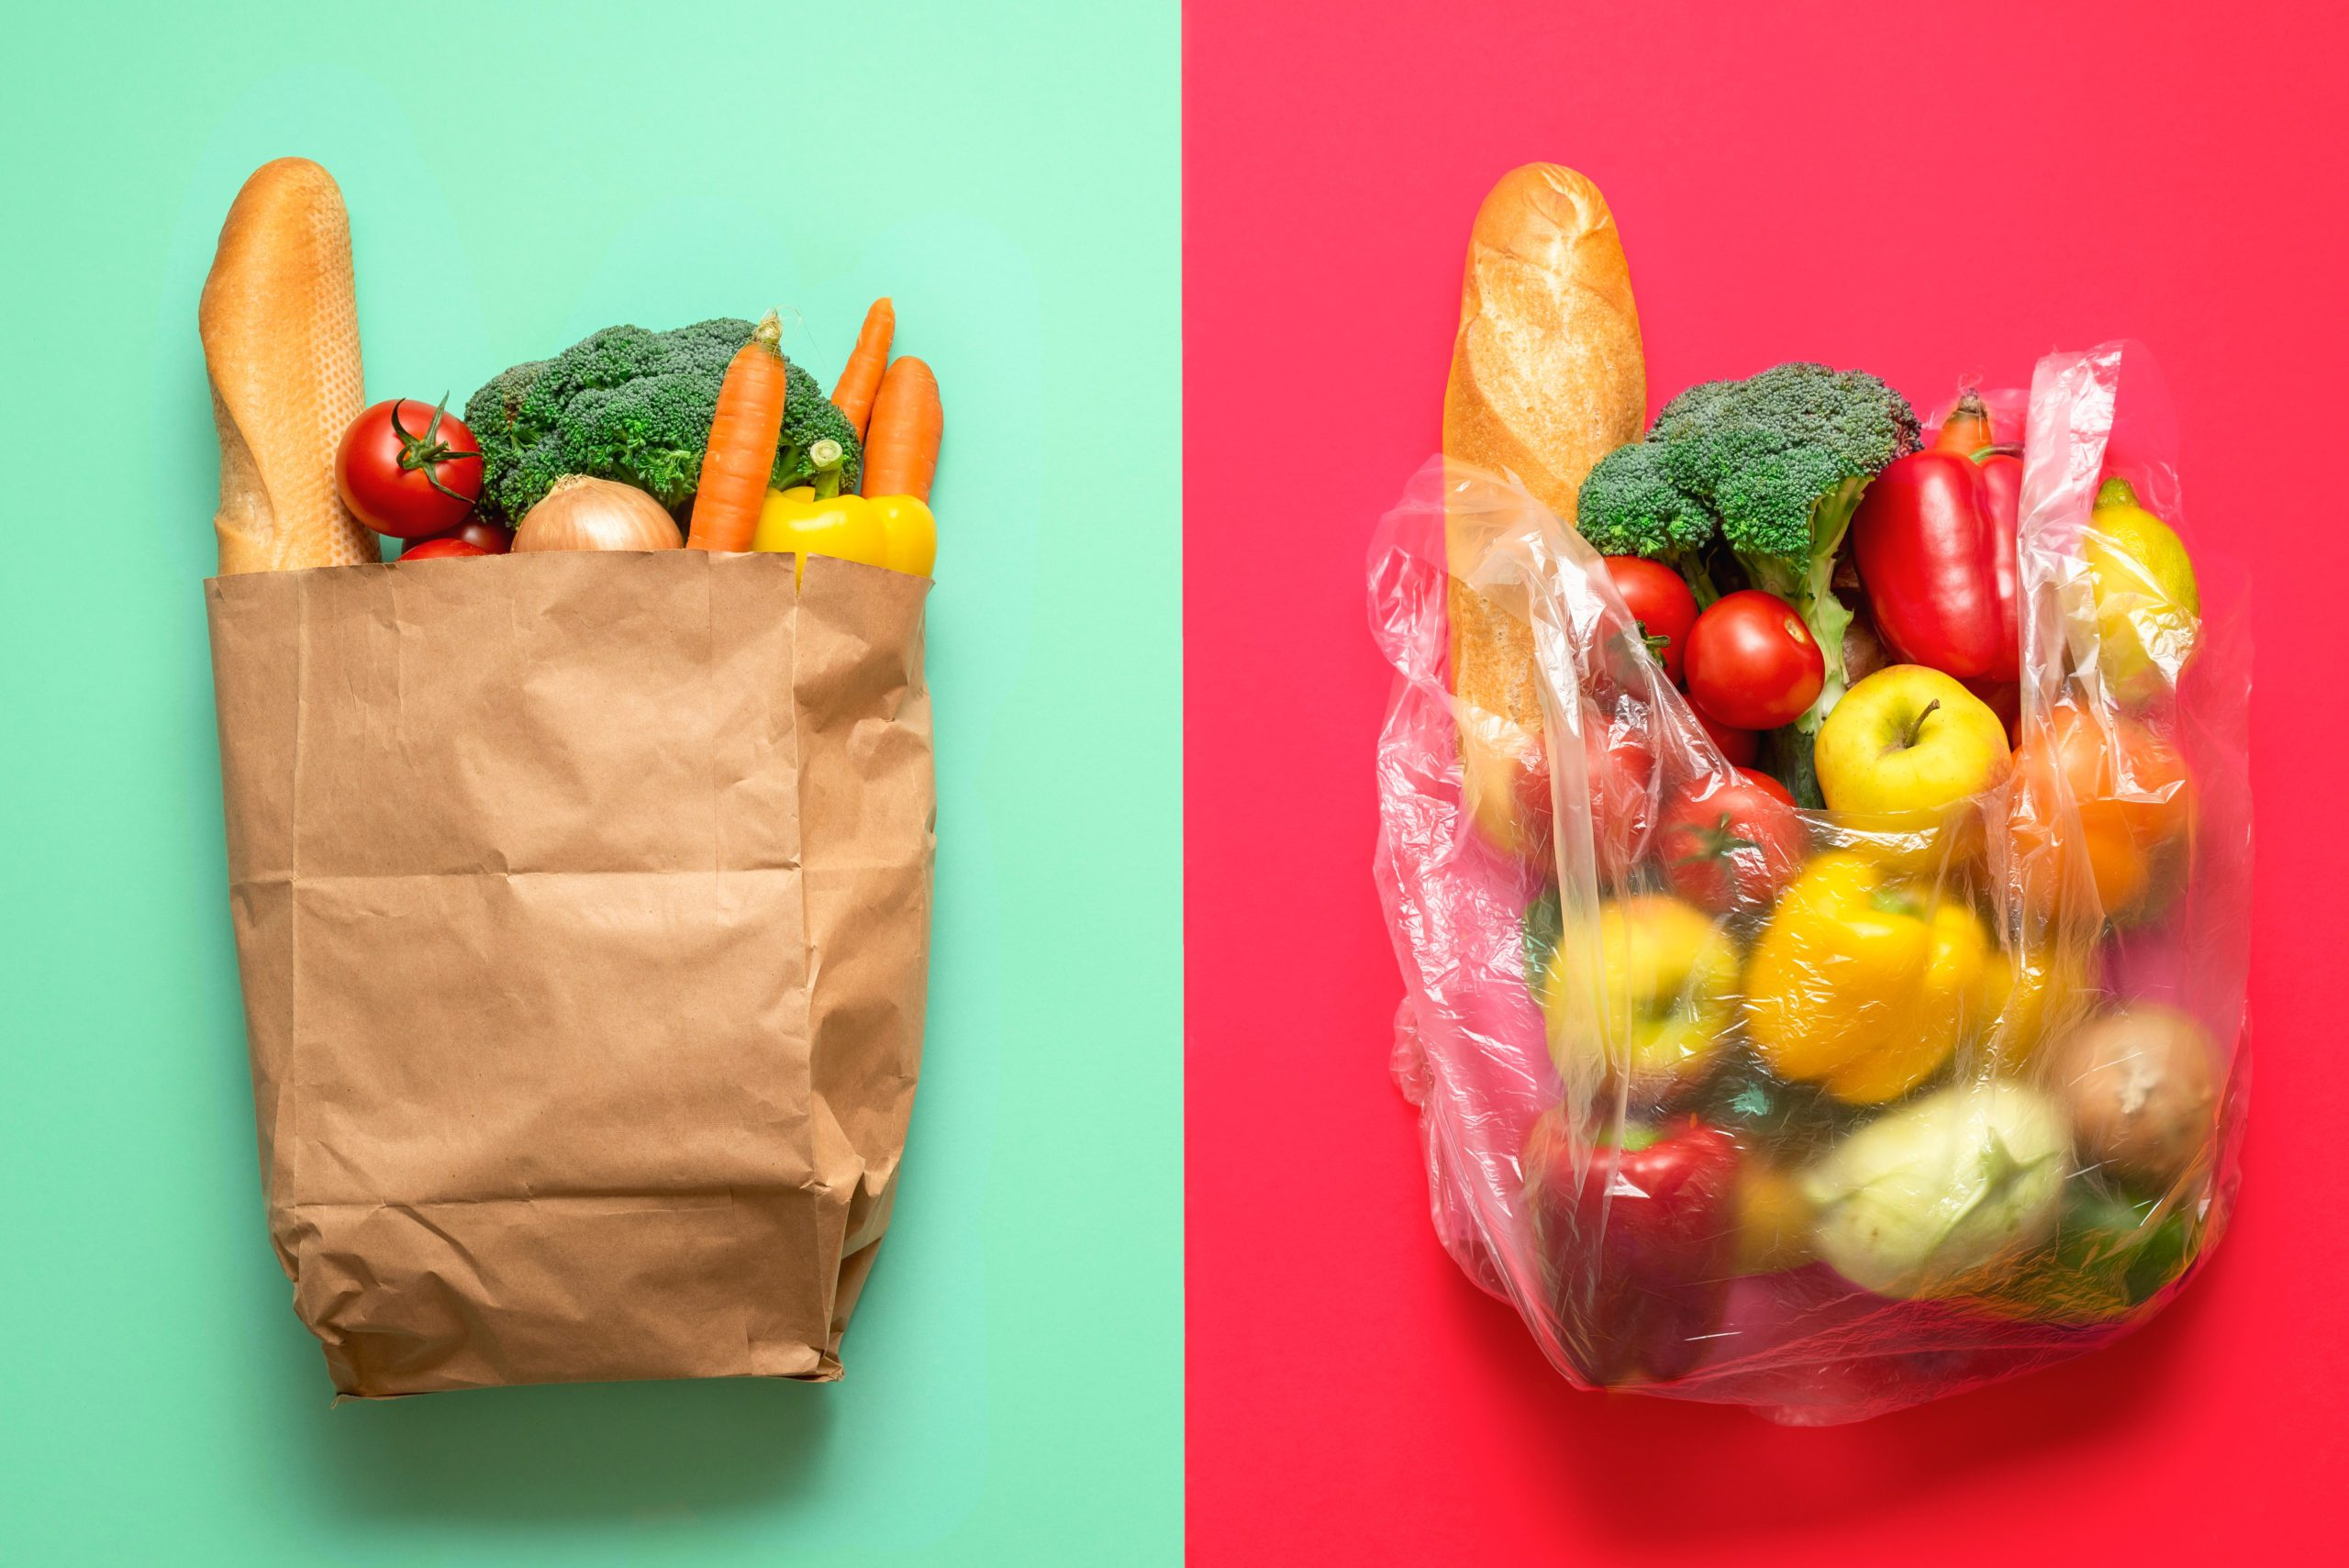 Future of Sustainable Packaging